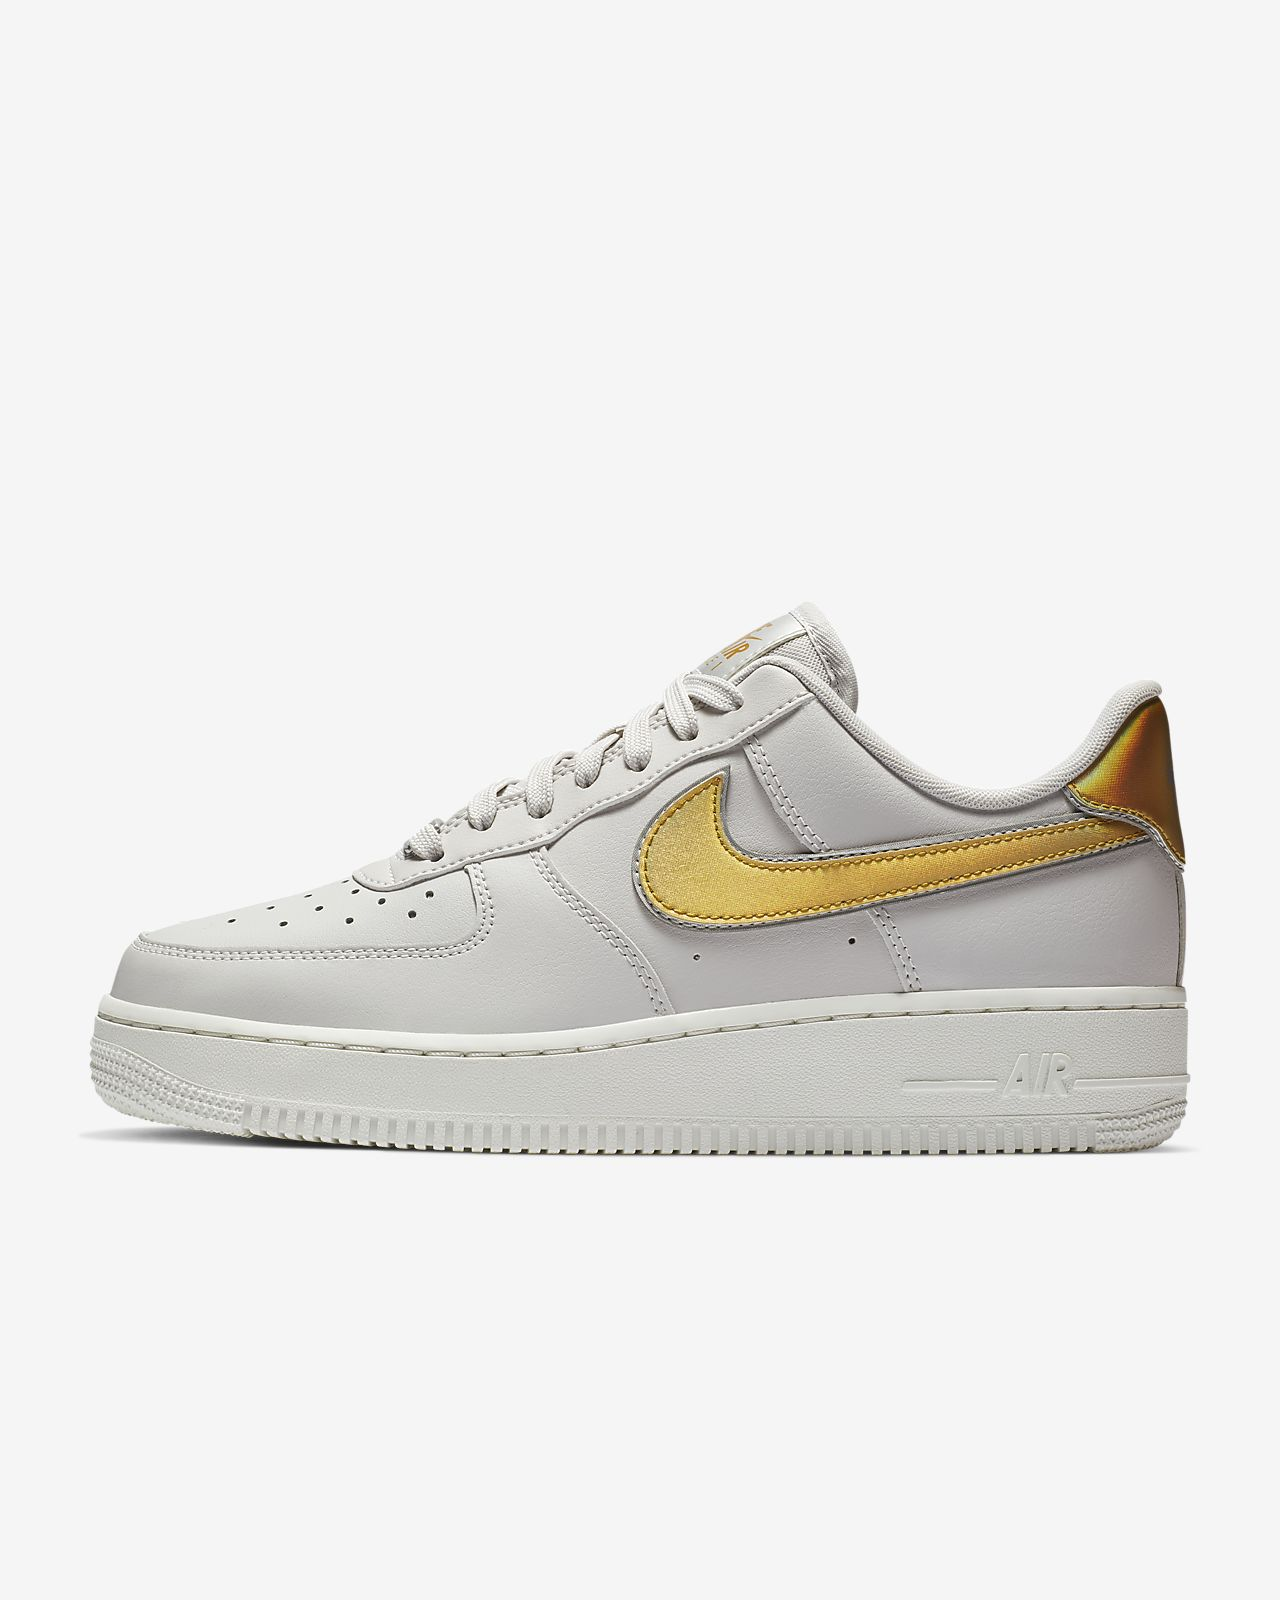 free shipping 708fc f0bdb ... Chaussure Nike Air Force 1 07 Metallic pour Femme